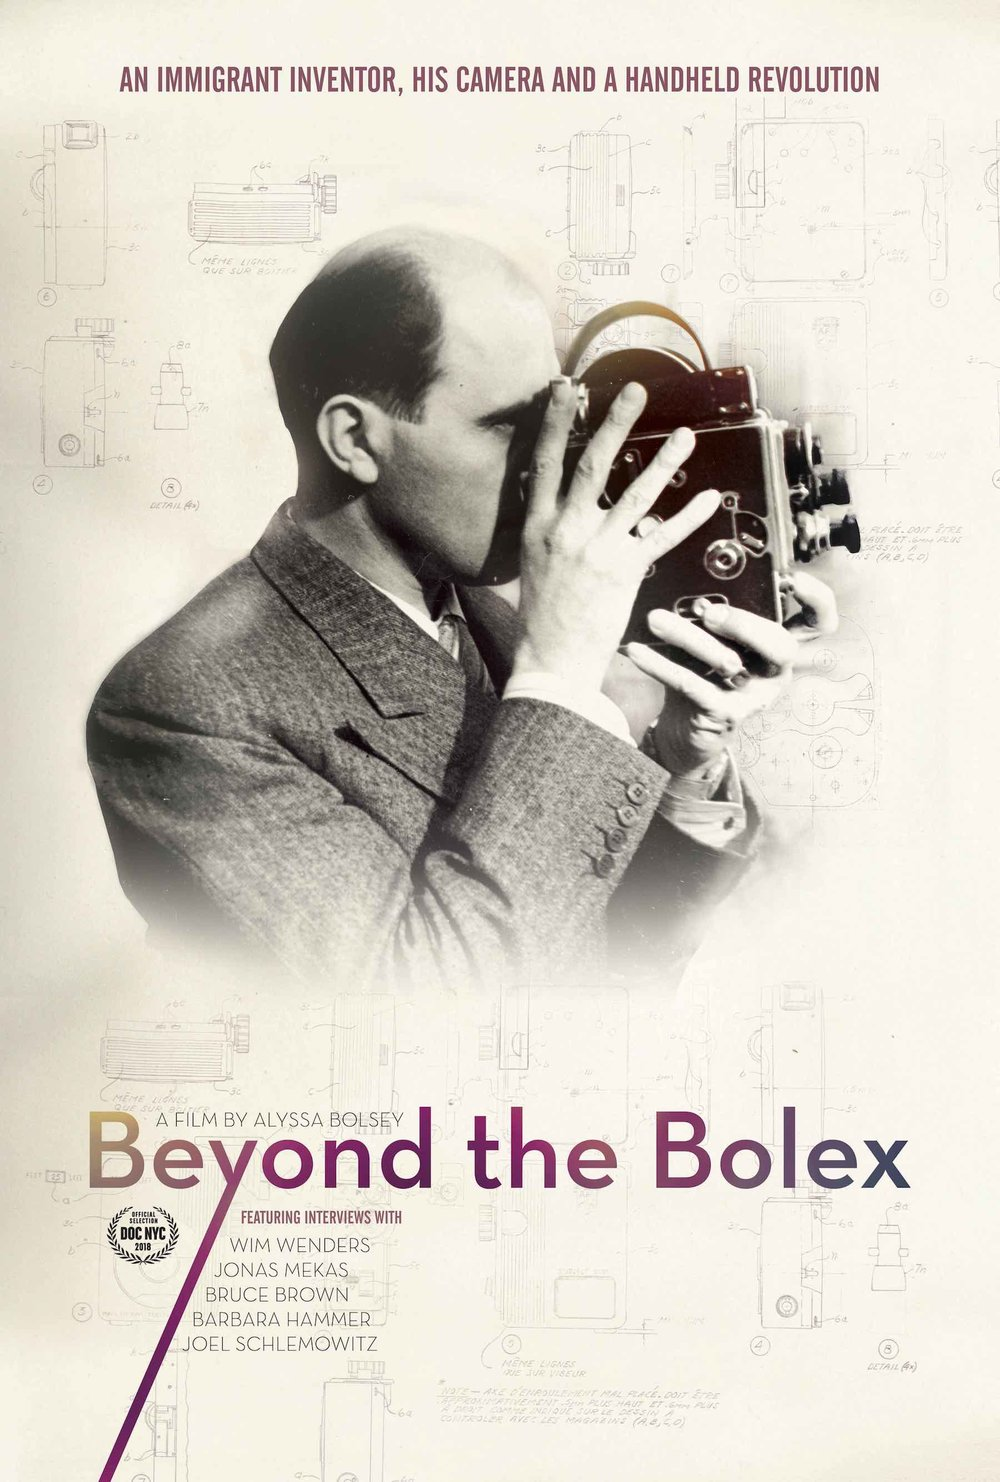 "Beyond the Bolex - 2018, USA/Switzerland, 91 min, in EnglishIn the 1920s immigrant inventor Jacques Bolsey aimed to disrupt the early film industry with a motion picture camera for the masses: the iconic Bolex. Over 90 years later, filmmaker Alyssa Bolsey pieces together the fragments of a forgotten family archive to reveal the epic story of her great-grandfather in ""Beyond the Bolex."" Interviewing family members and renowned filmmakers, Alyssa travels to Switzerland, and delves into Jacques' personal diary, film reels and collected images in order to understand the man and his impact on generations of filmmakers. More about the film here."